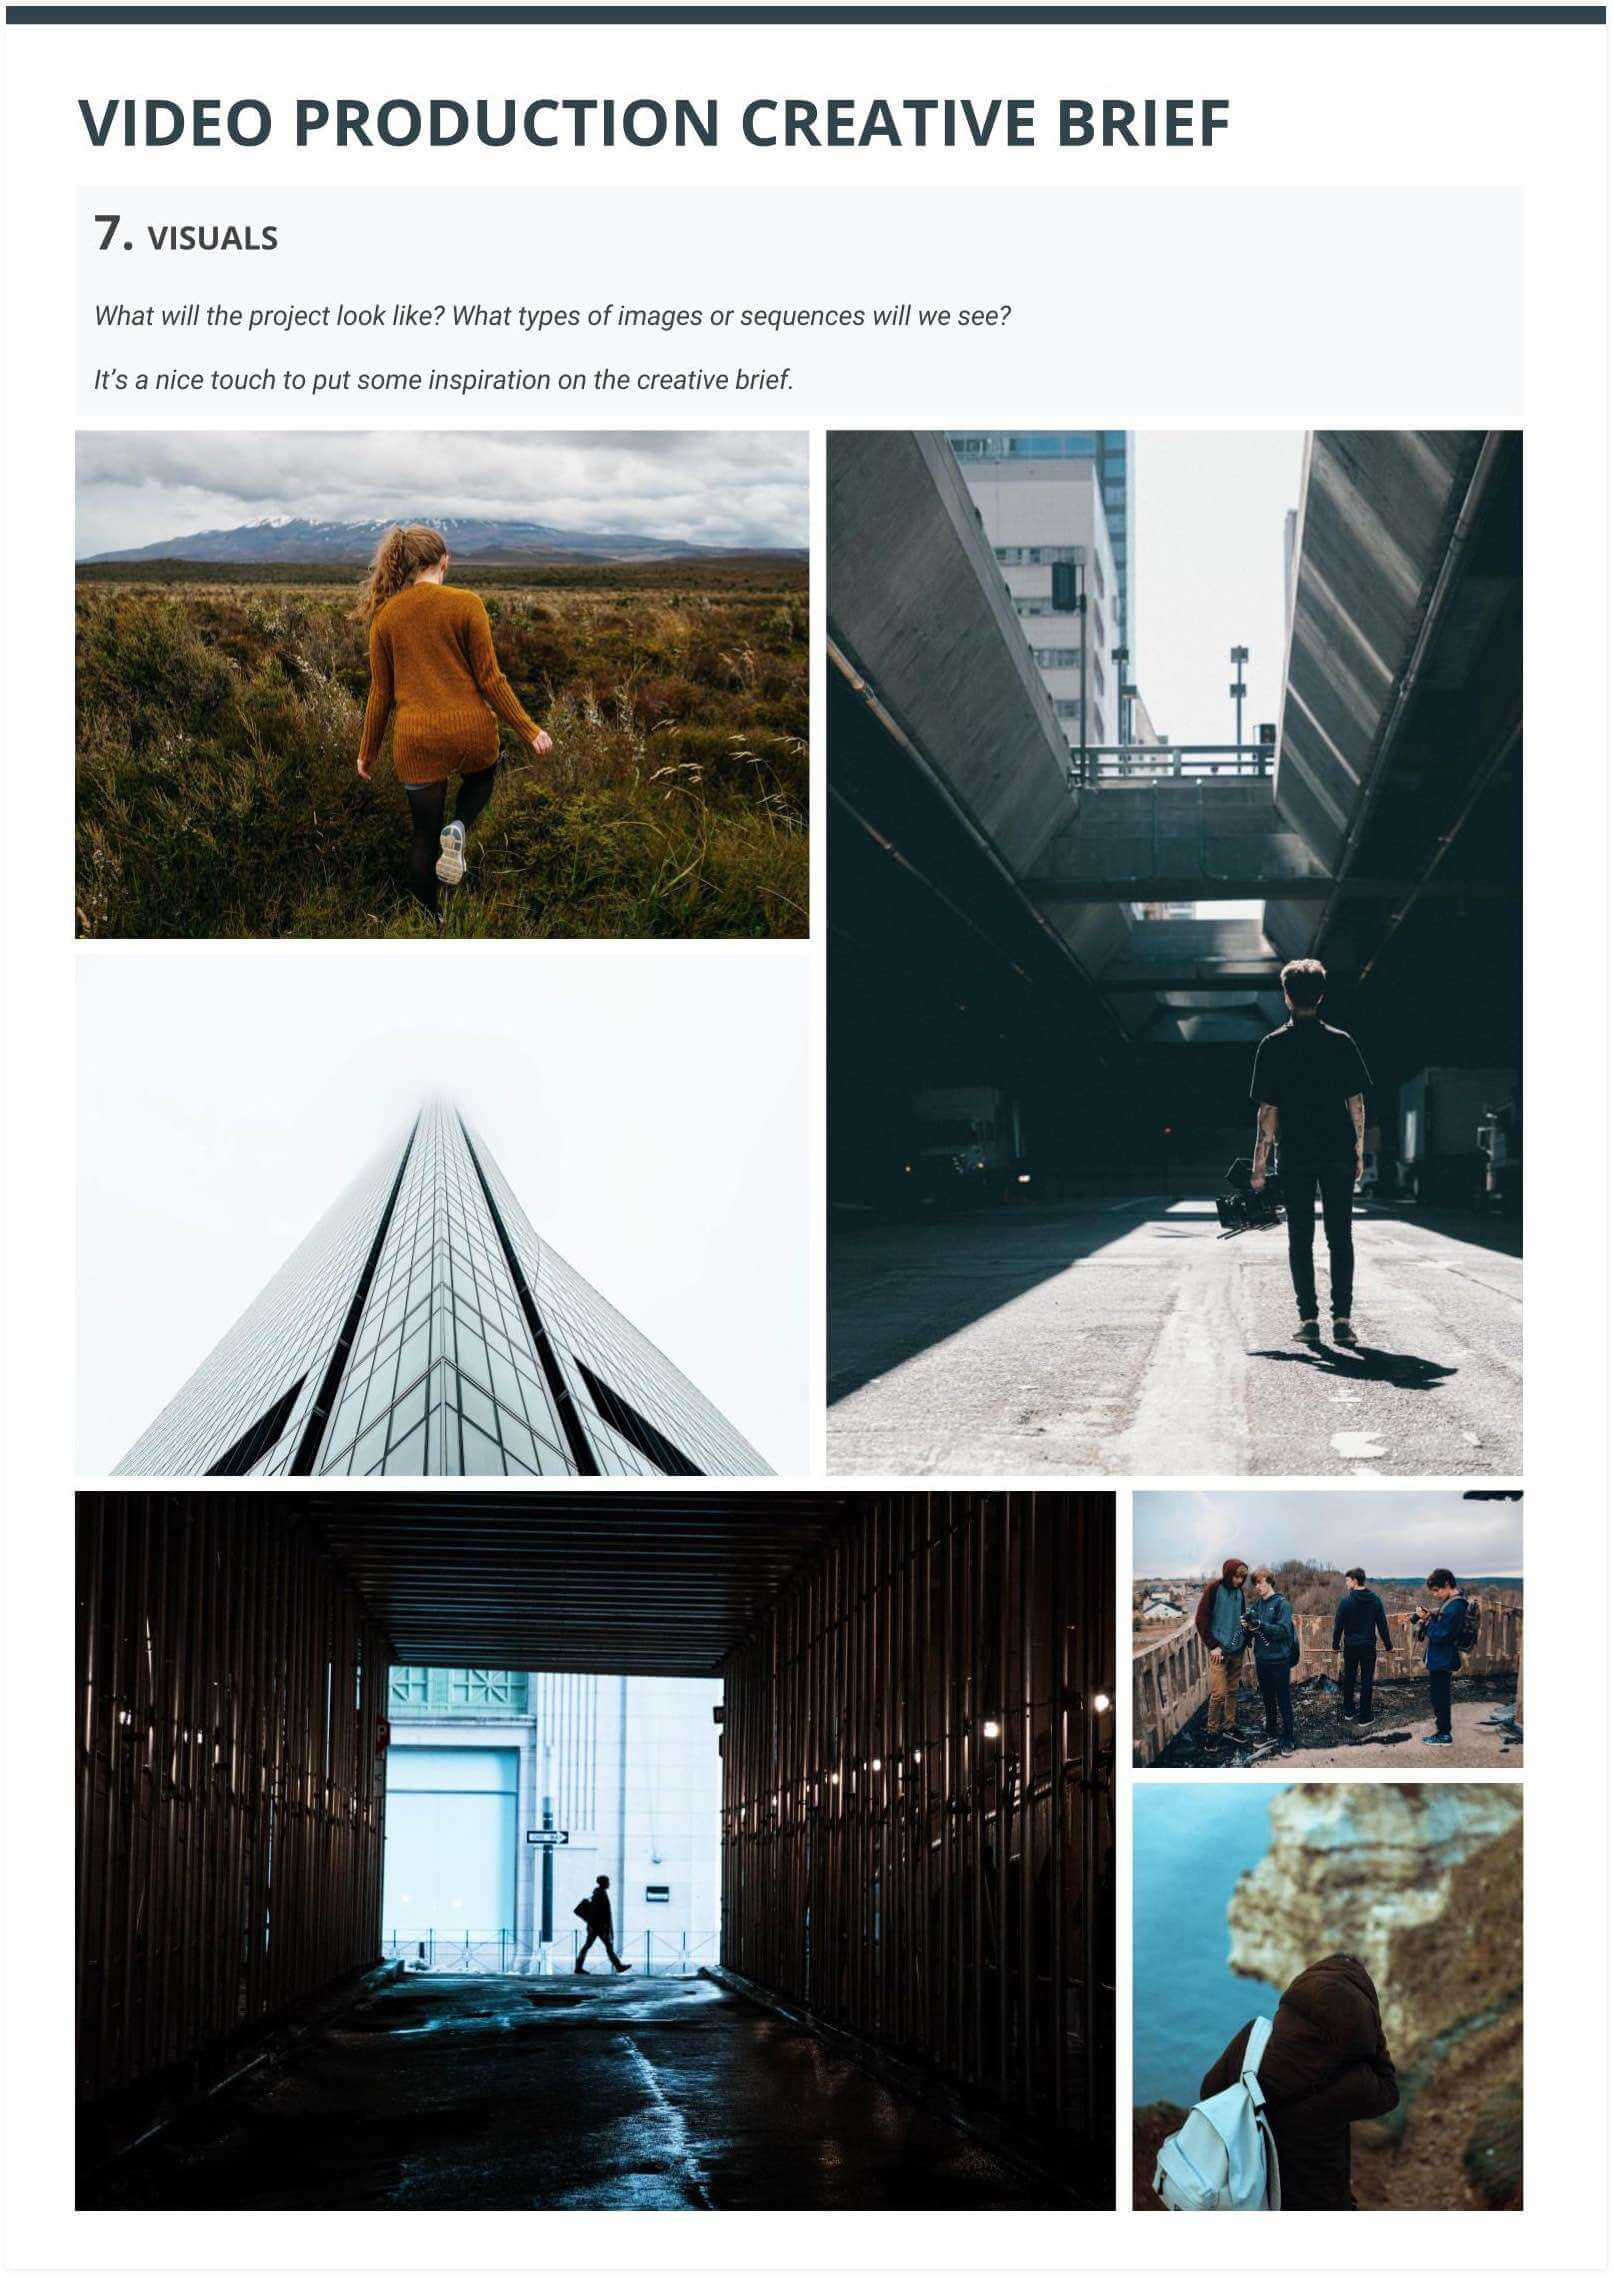 The Best Creative Brief Template For Video Agencies [Free Download] - Section 7 - Mood Board Visuals